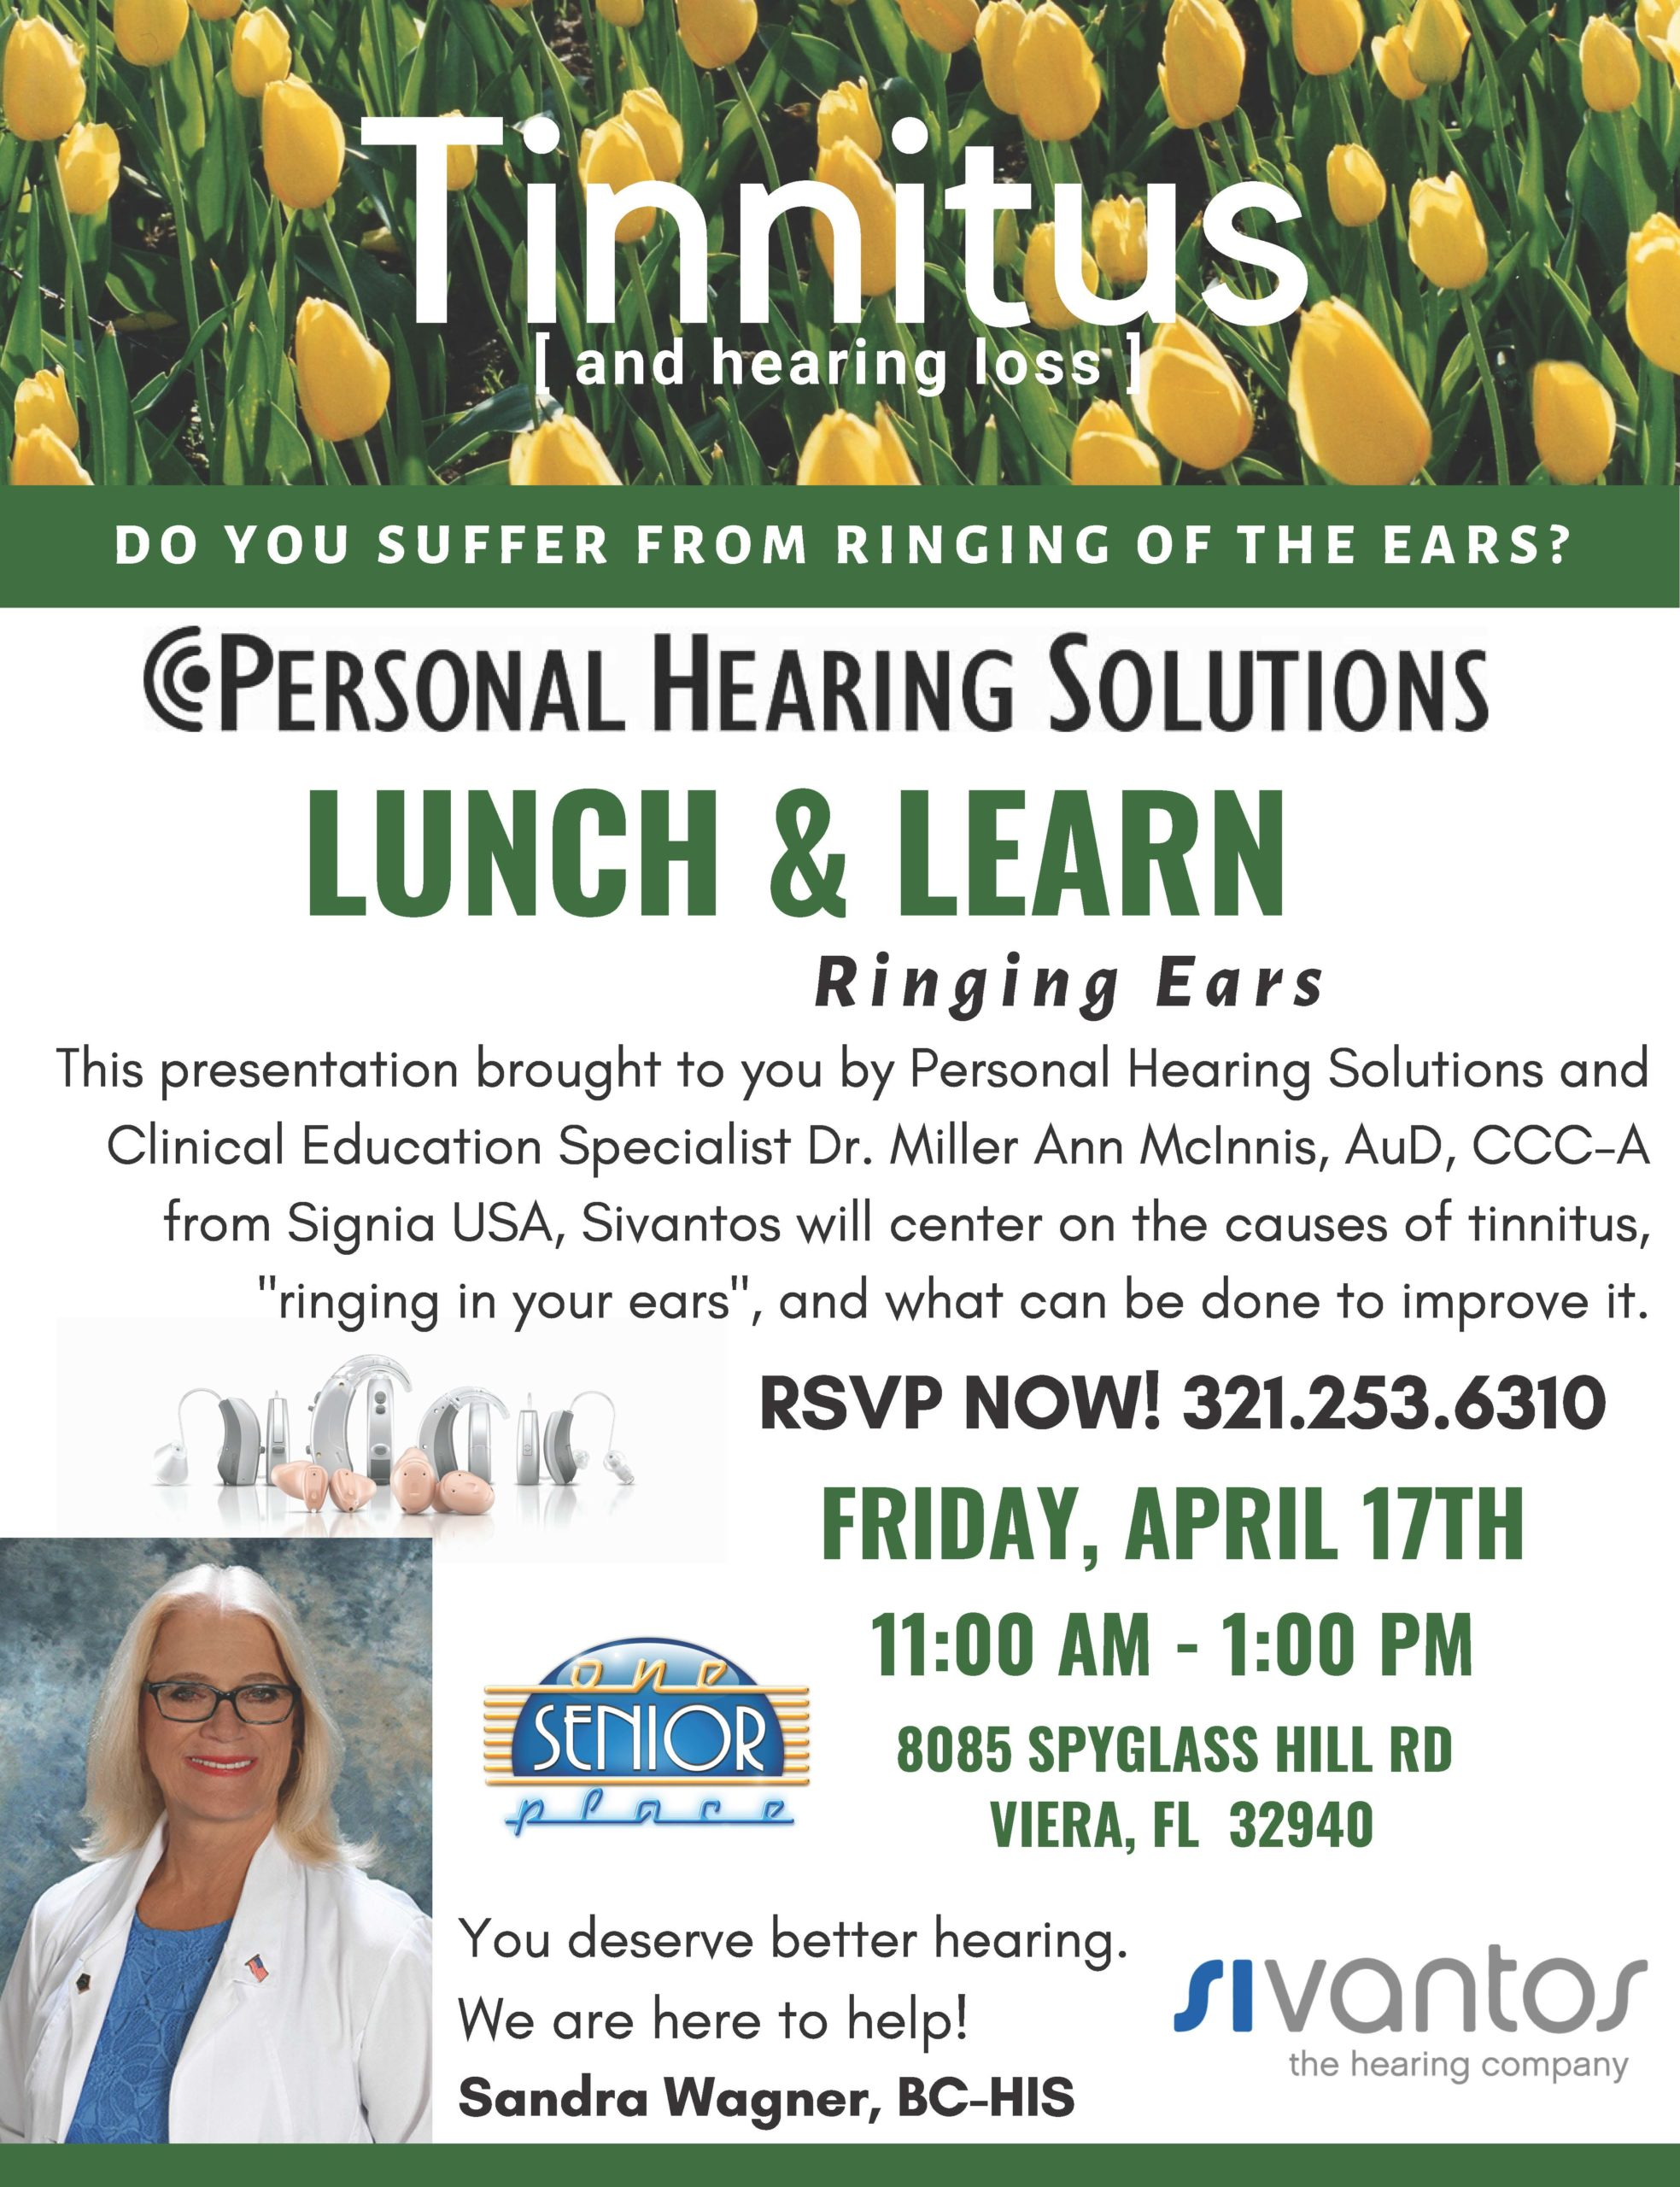 CANCELLED - Tinnitus [and hearing loss] Lunch and Learn Seminar presented by Personal Hearing Solutions